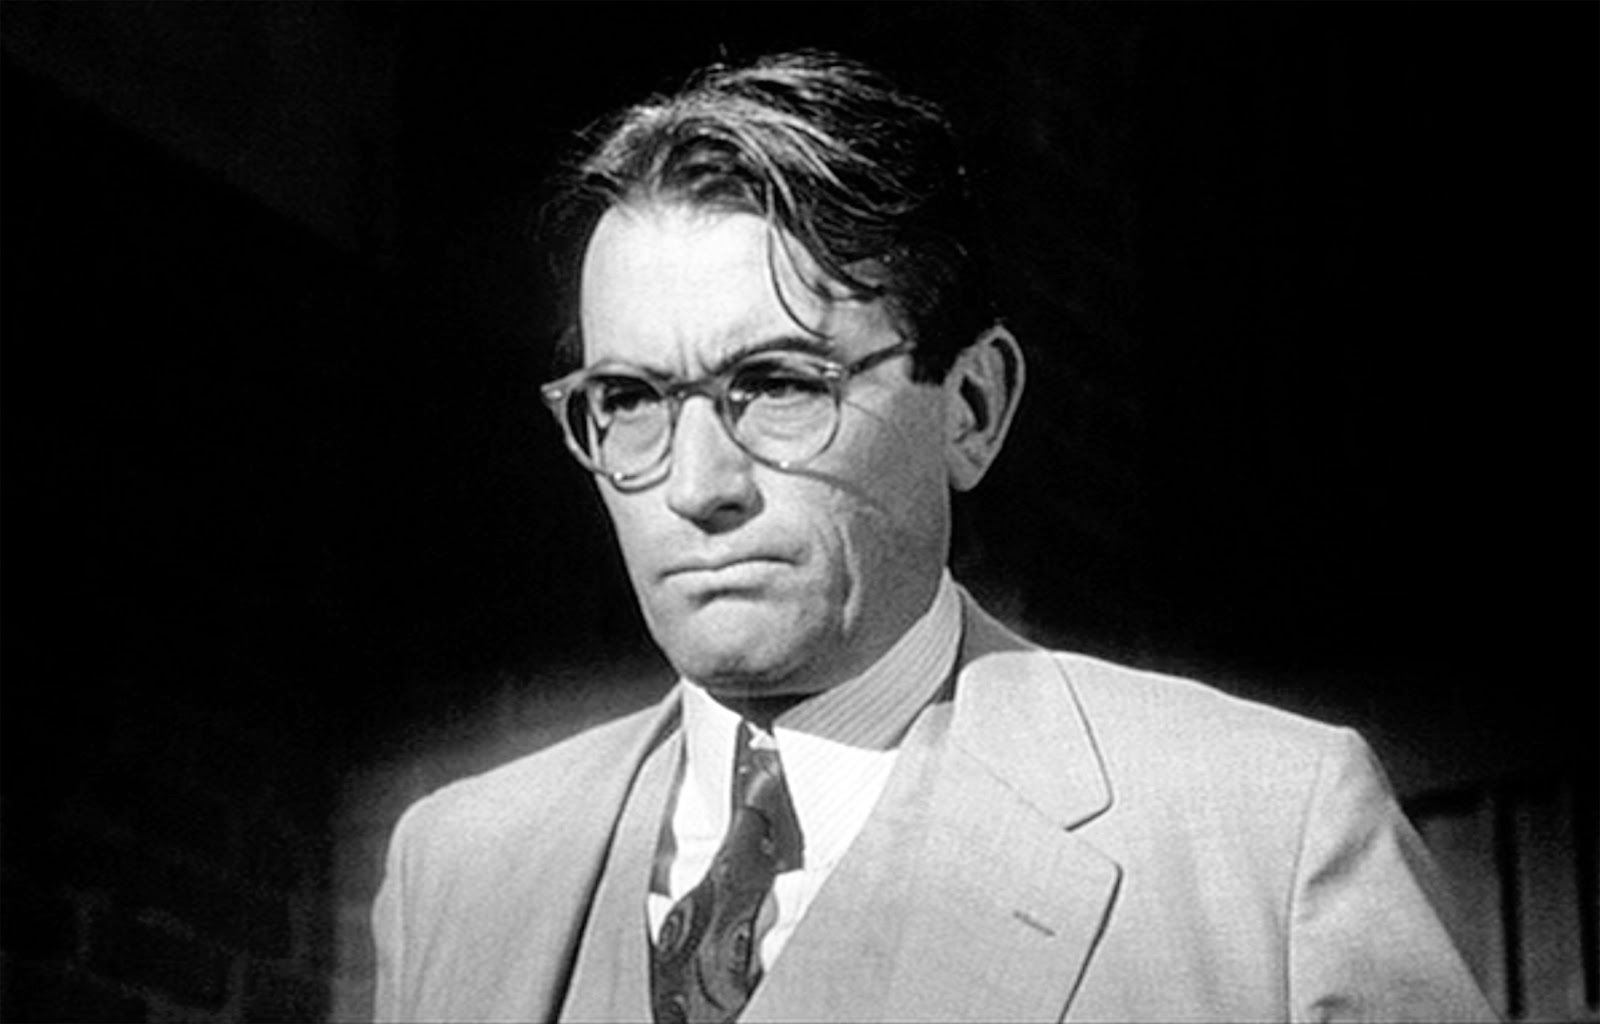 to kill a mocking bird atticus Free essay: harper lee's to kill a mockingbird depicts atticus finch as a good father to his children due to his sense of fairness, his teaching, and his.